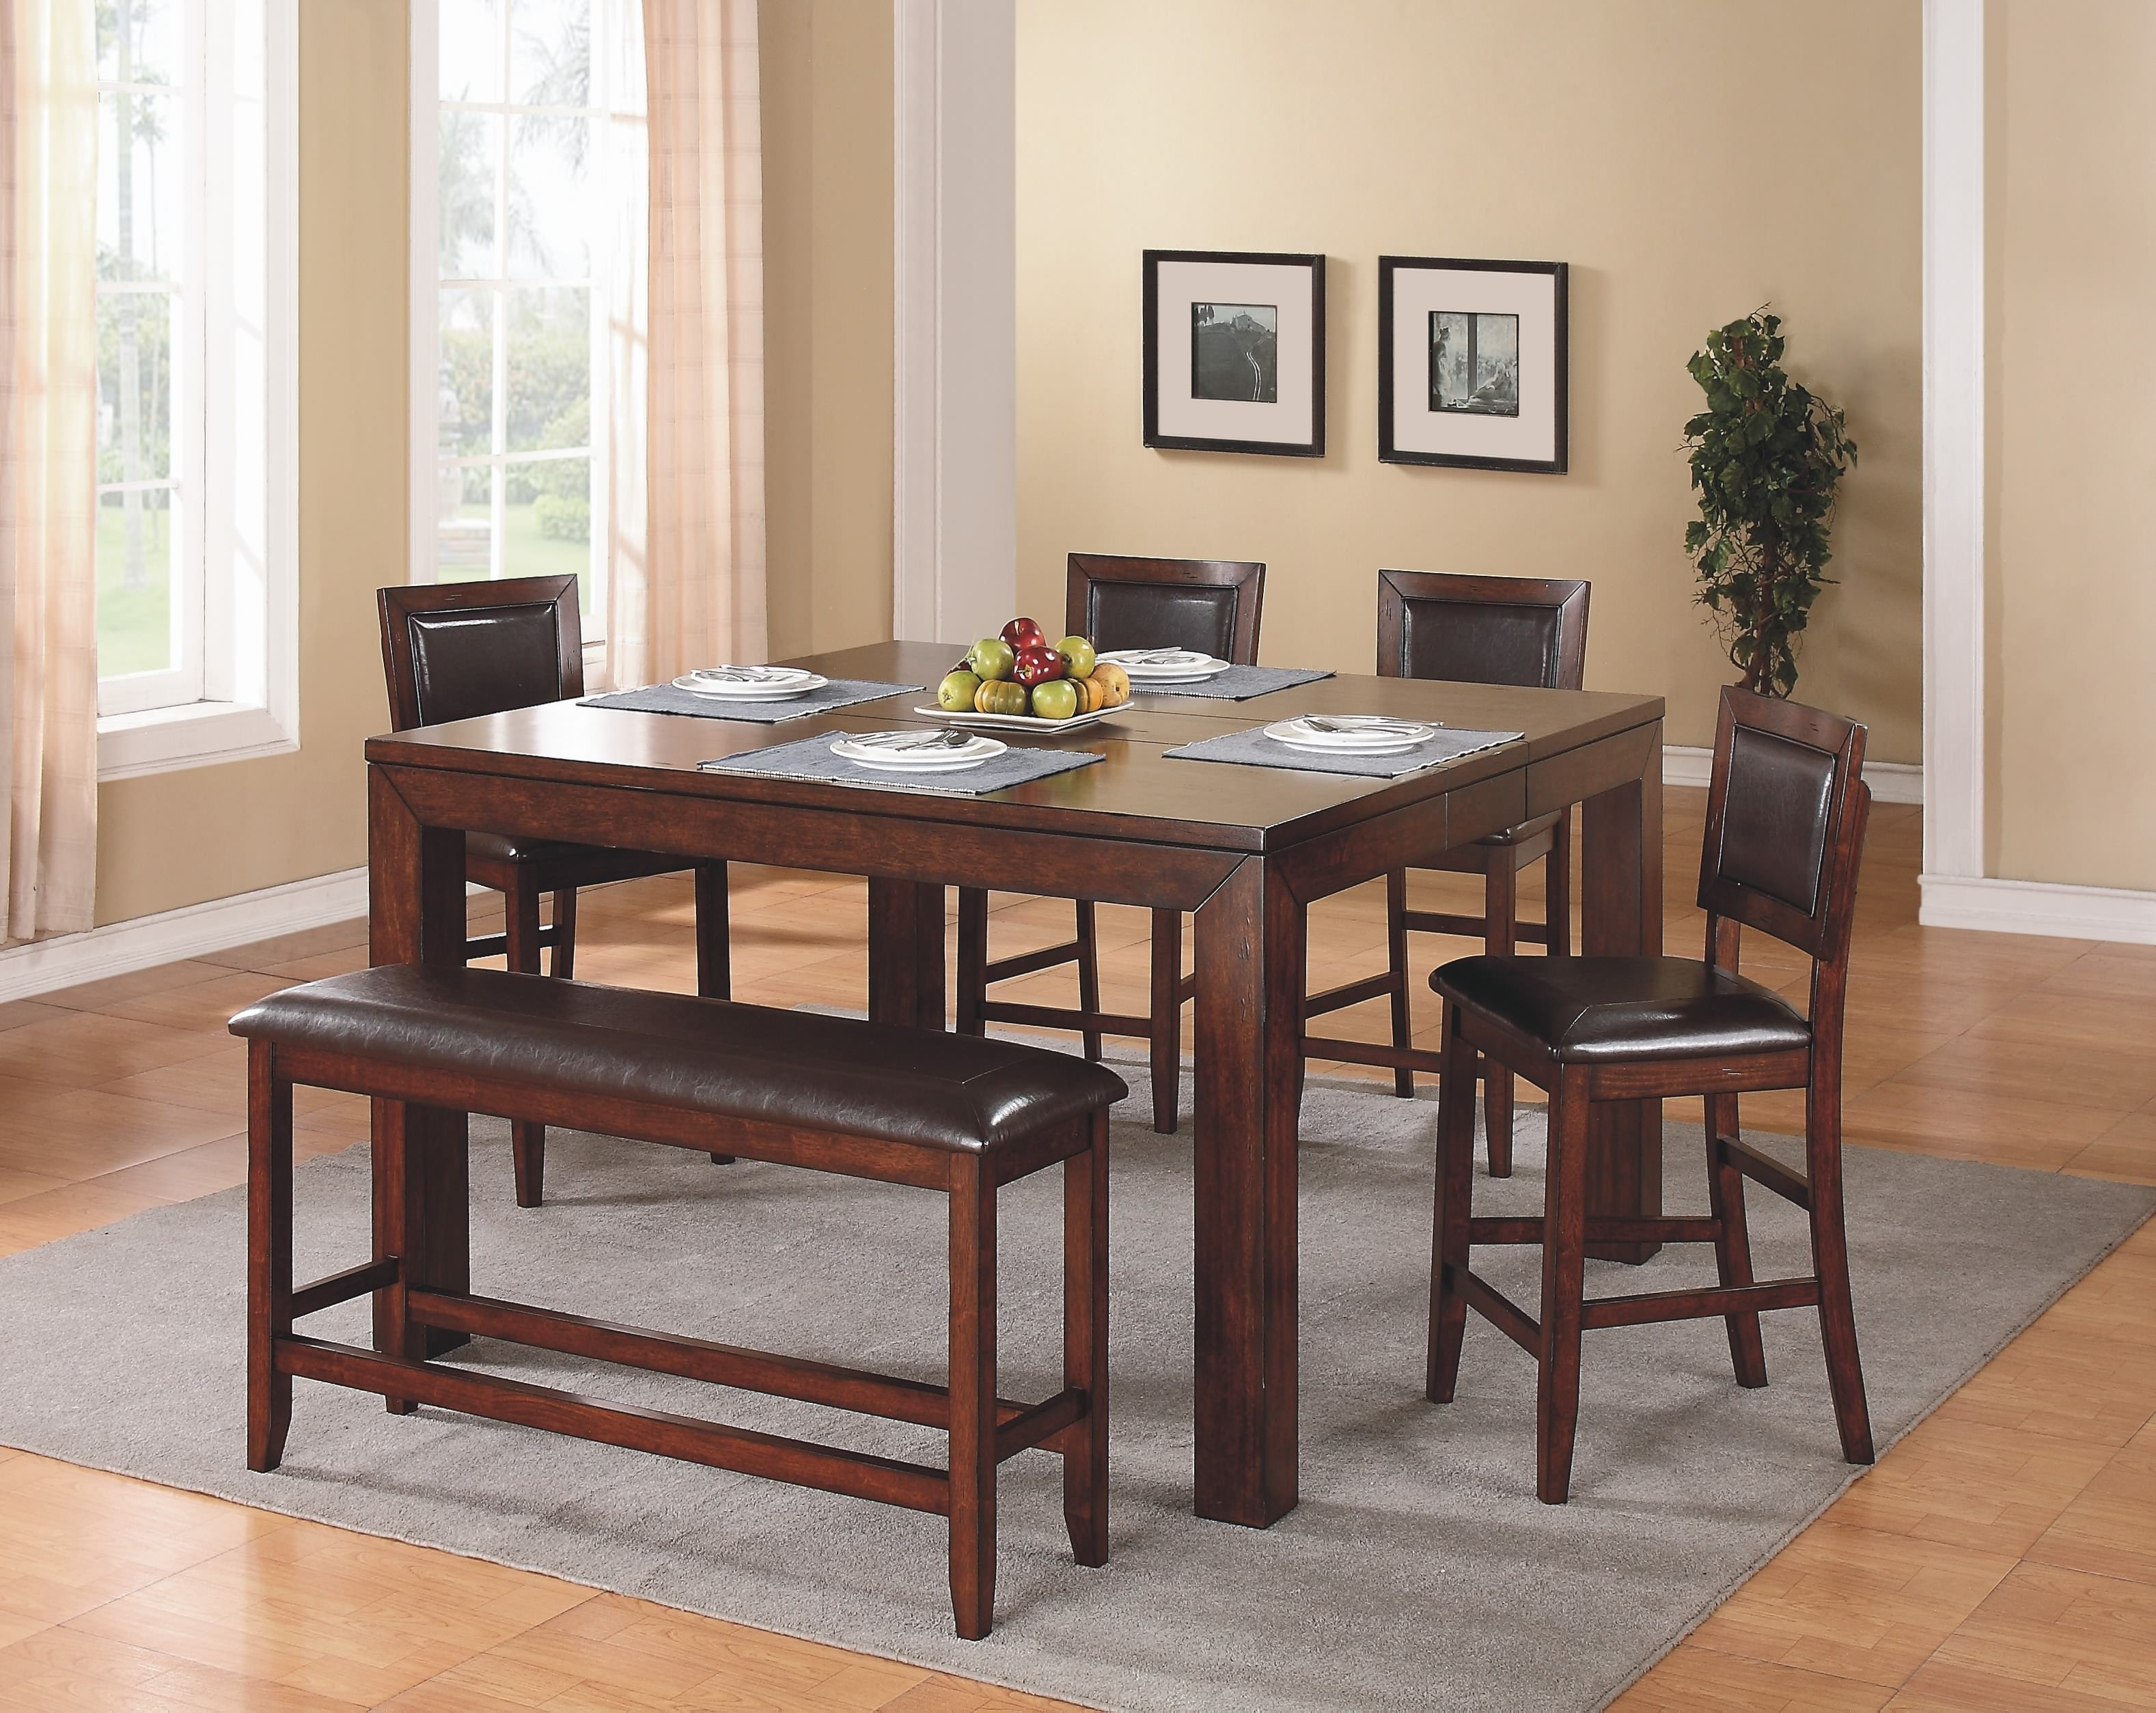 Fallbrook Counter Height Leg Table Dfmt16060 Dining Tables